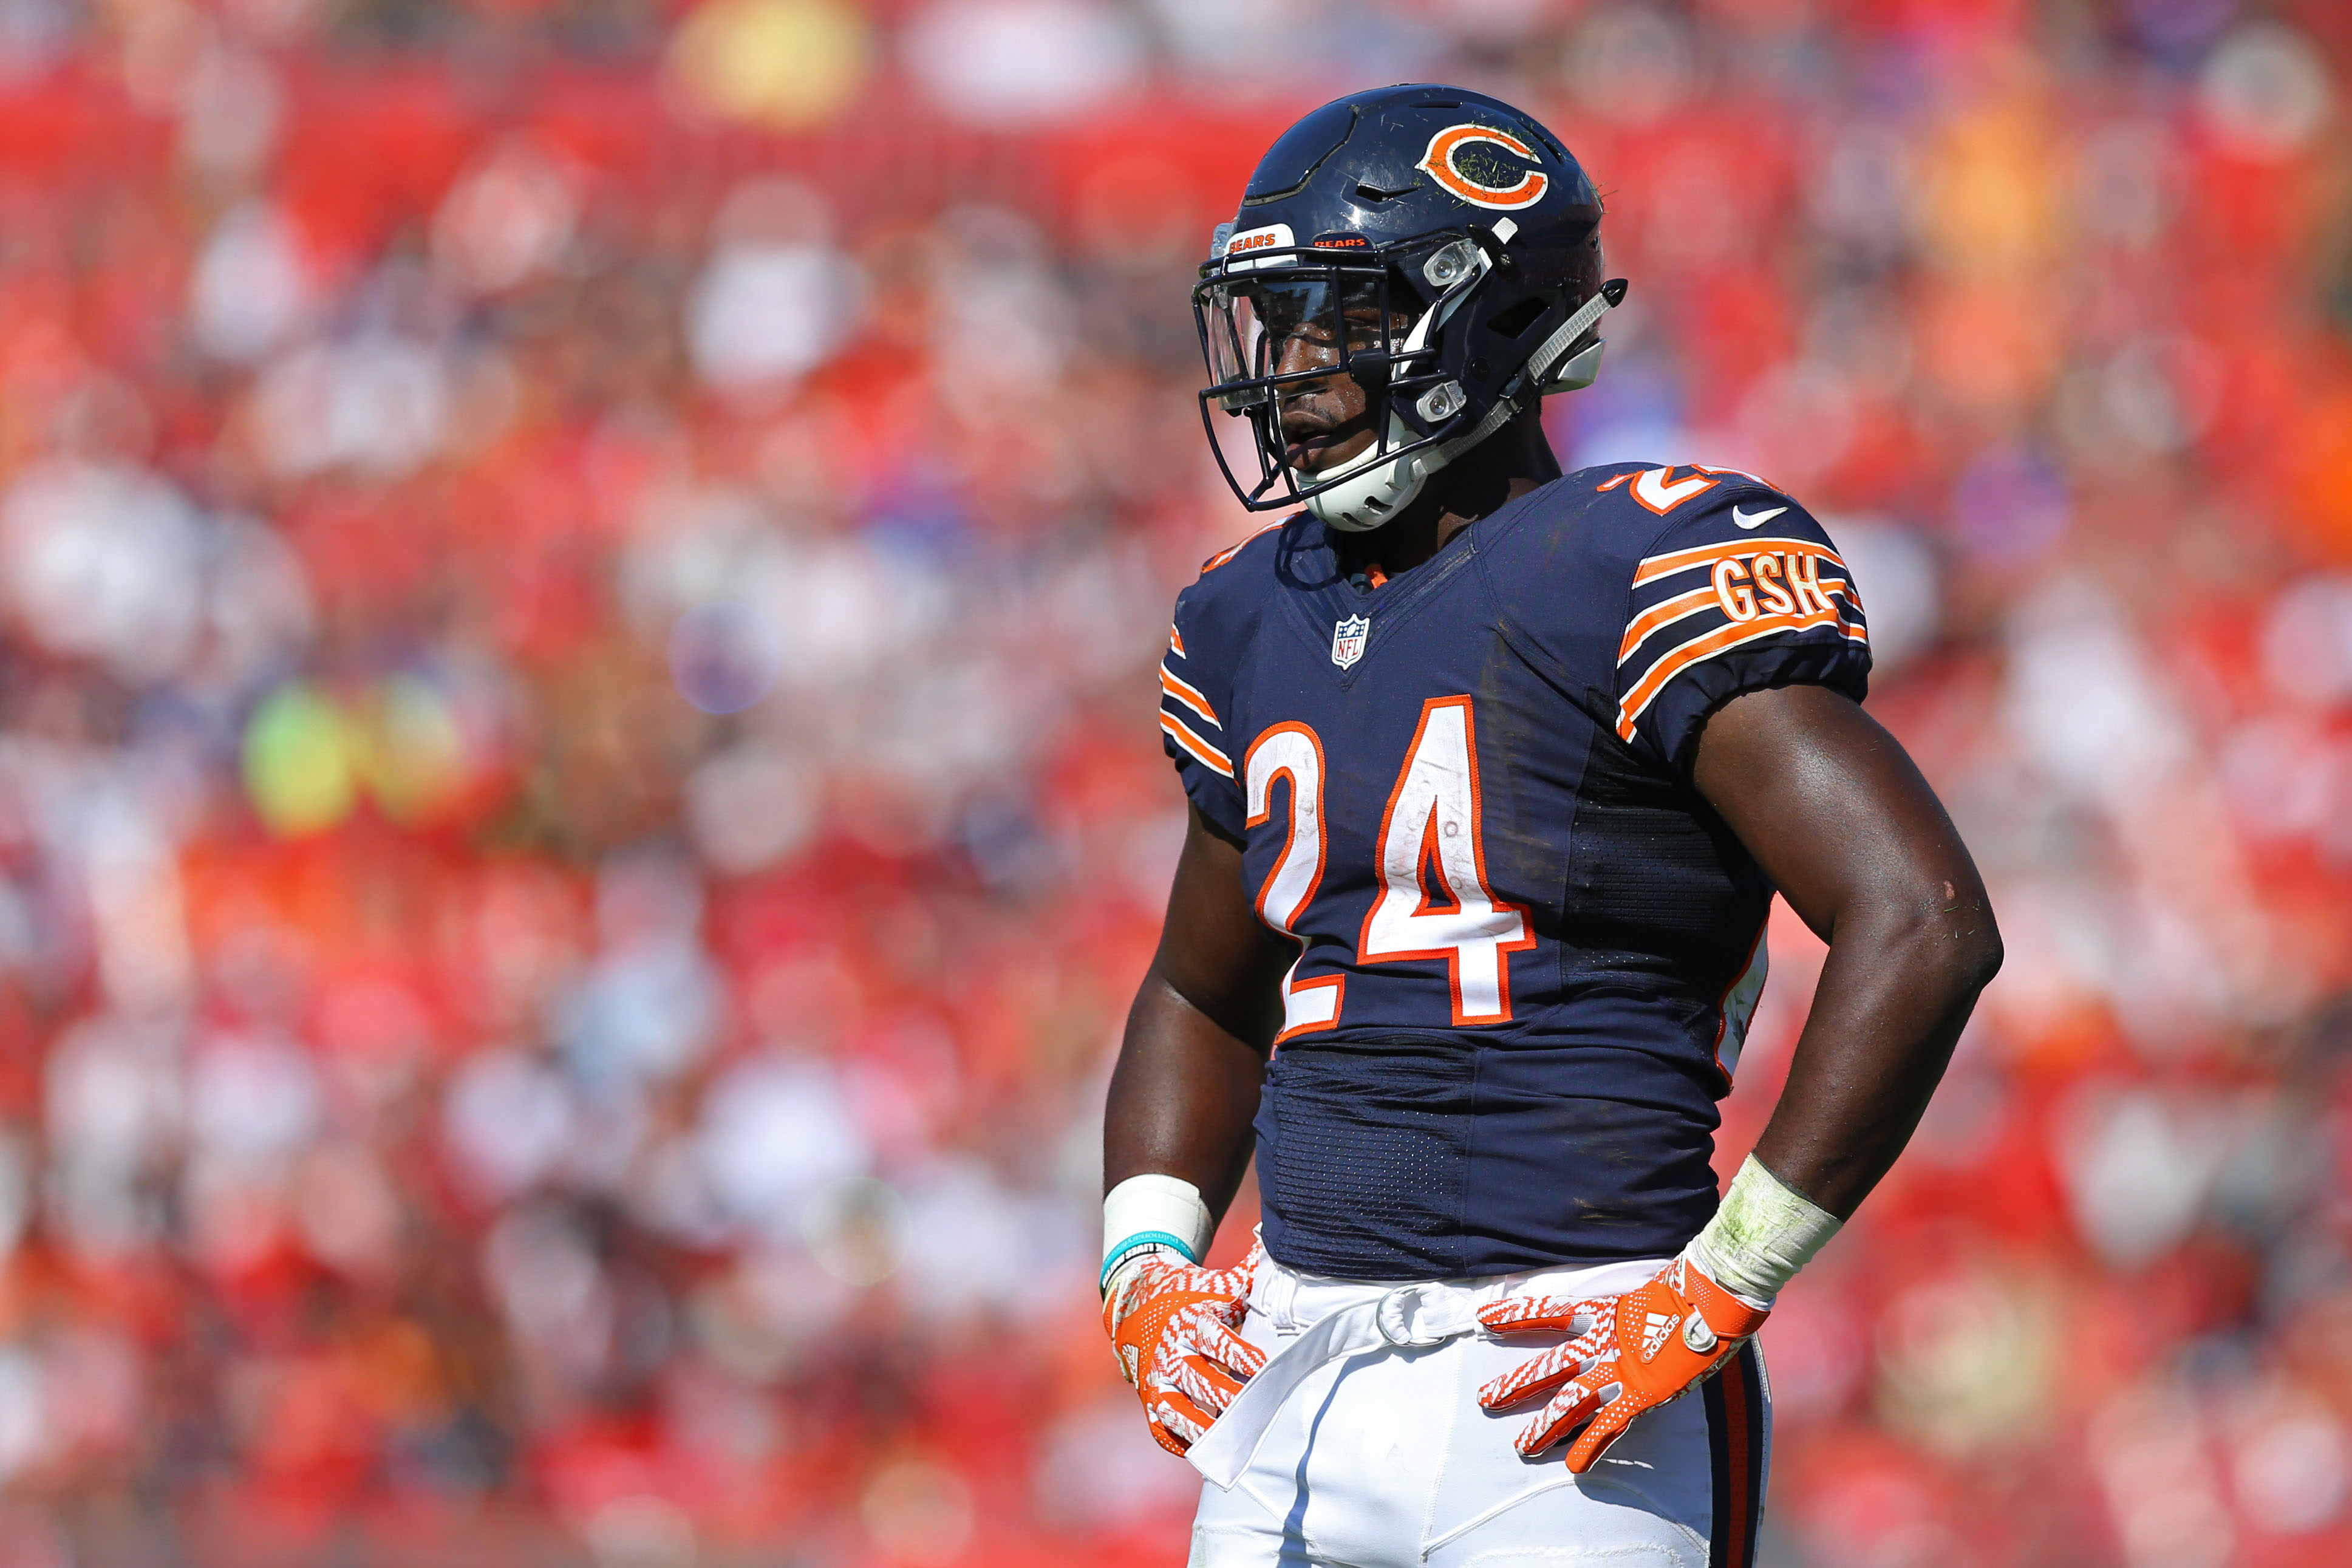 9683247-nfl-chicago-bears-at-tampa-bay-buccaneers